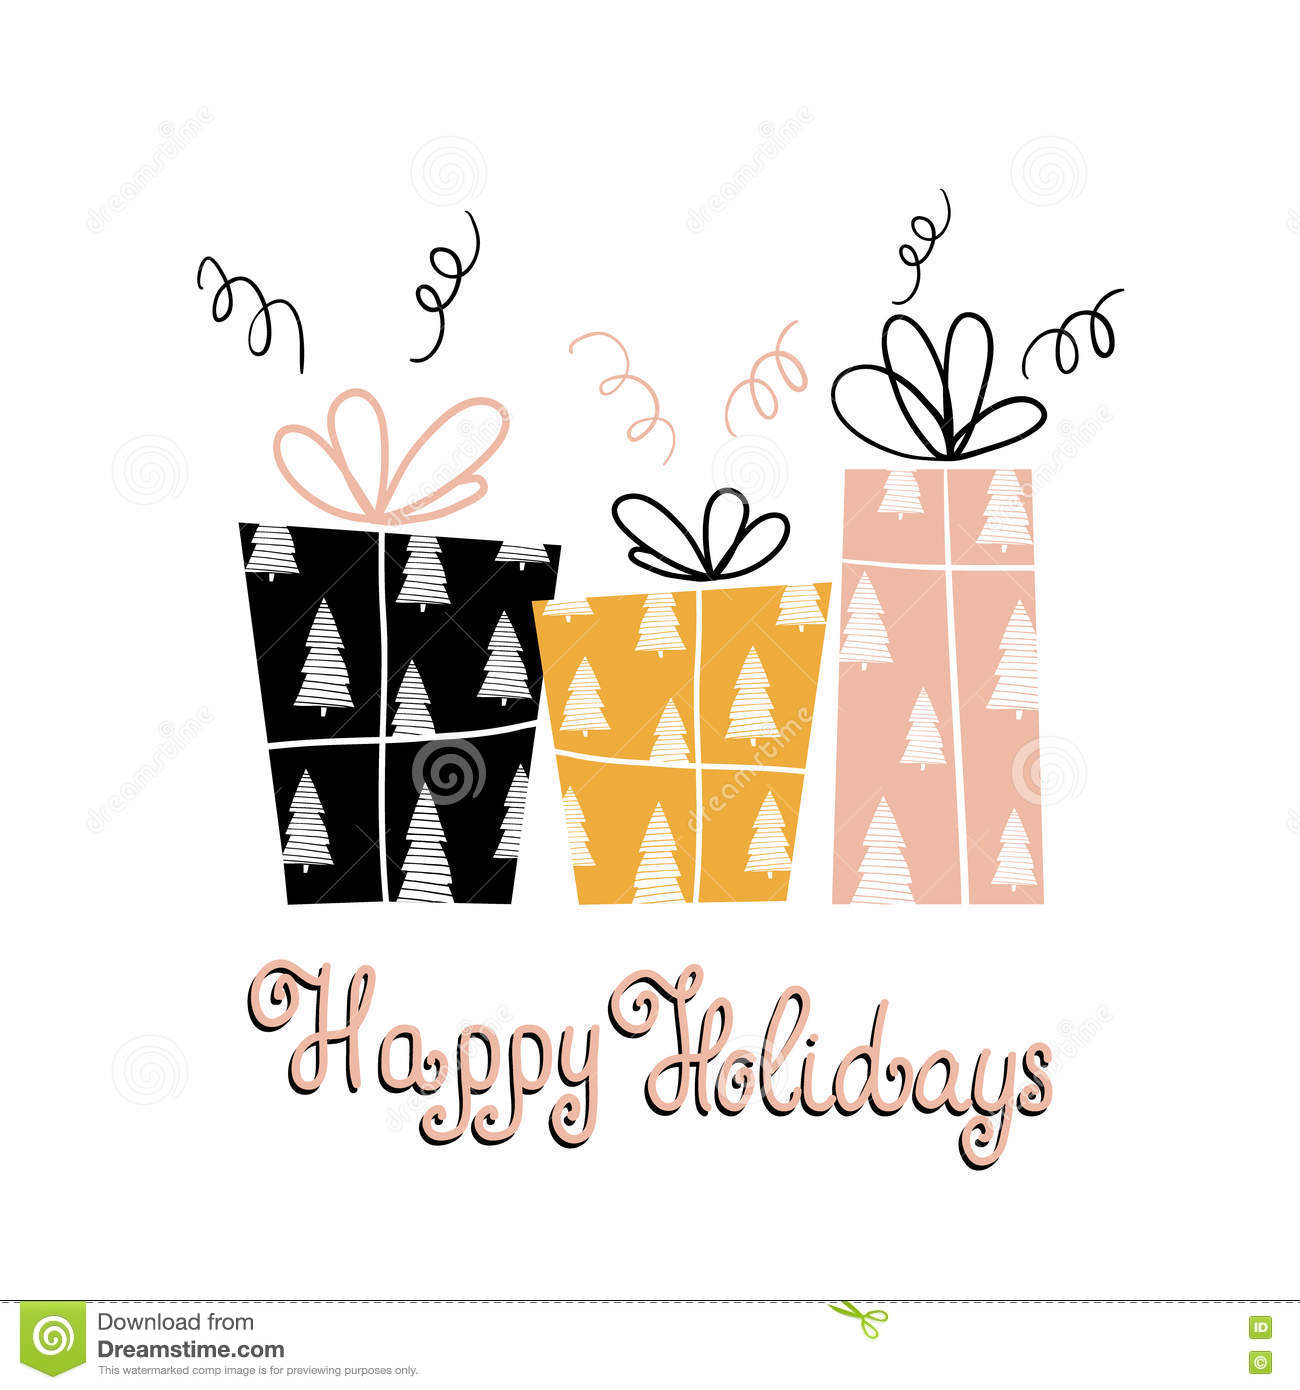 Happy Holidays- Unique Holiday Handwritten Lettering And